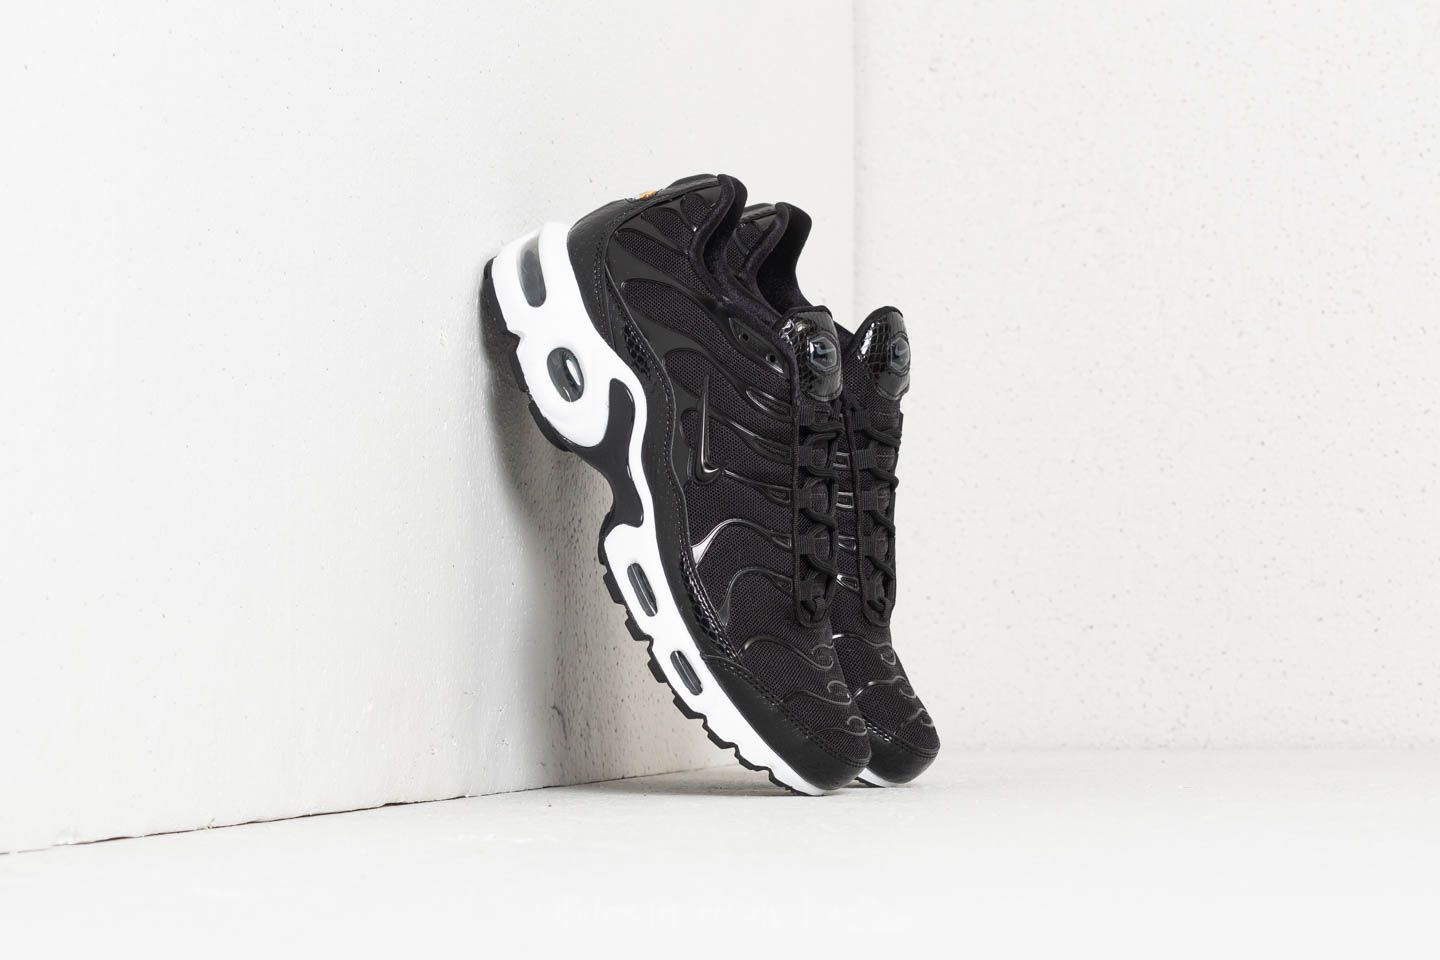 detailed look 21874 20608 Nike Wmns Air Max Plus SE